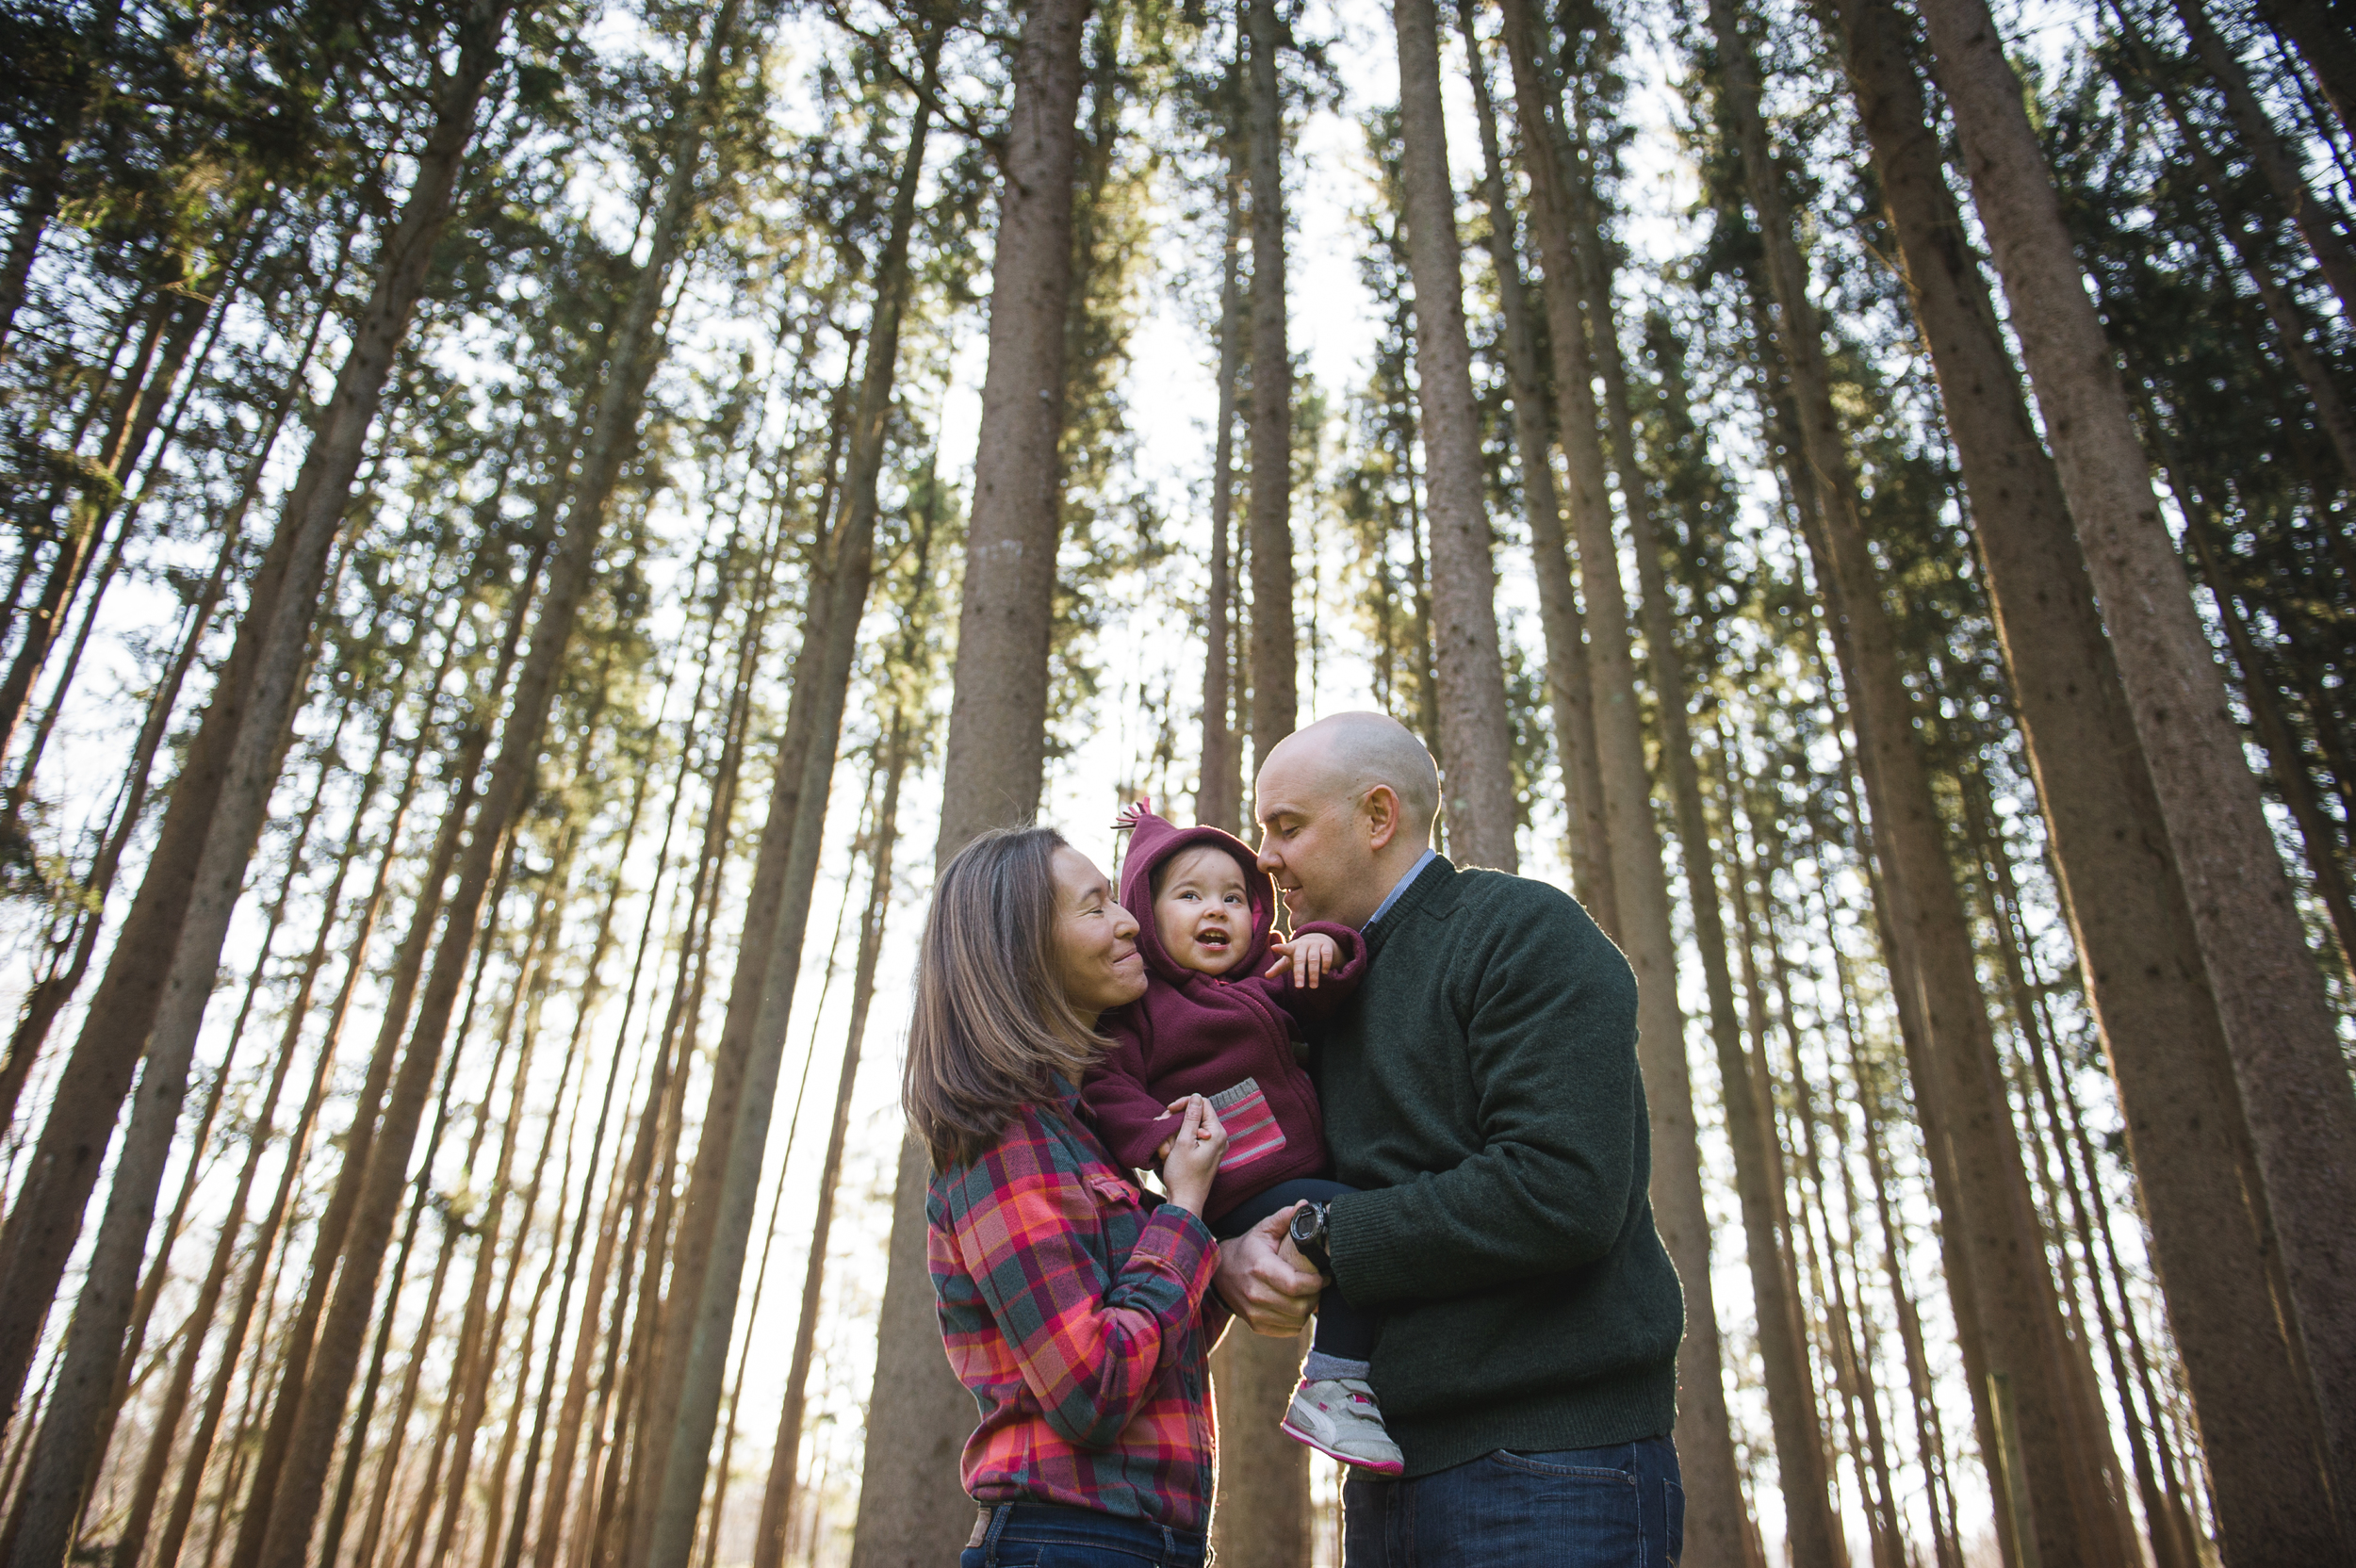 family portrait in the woods by Erin Borzellino. Armonk, NY portrait photographer